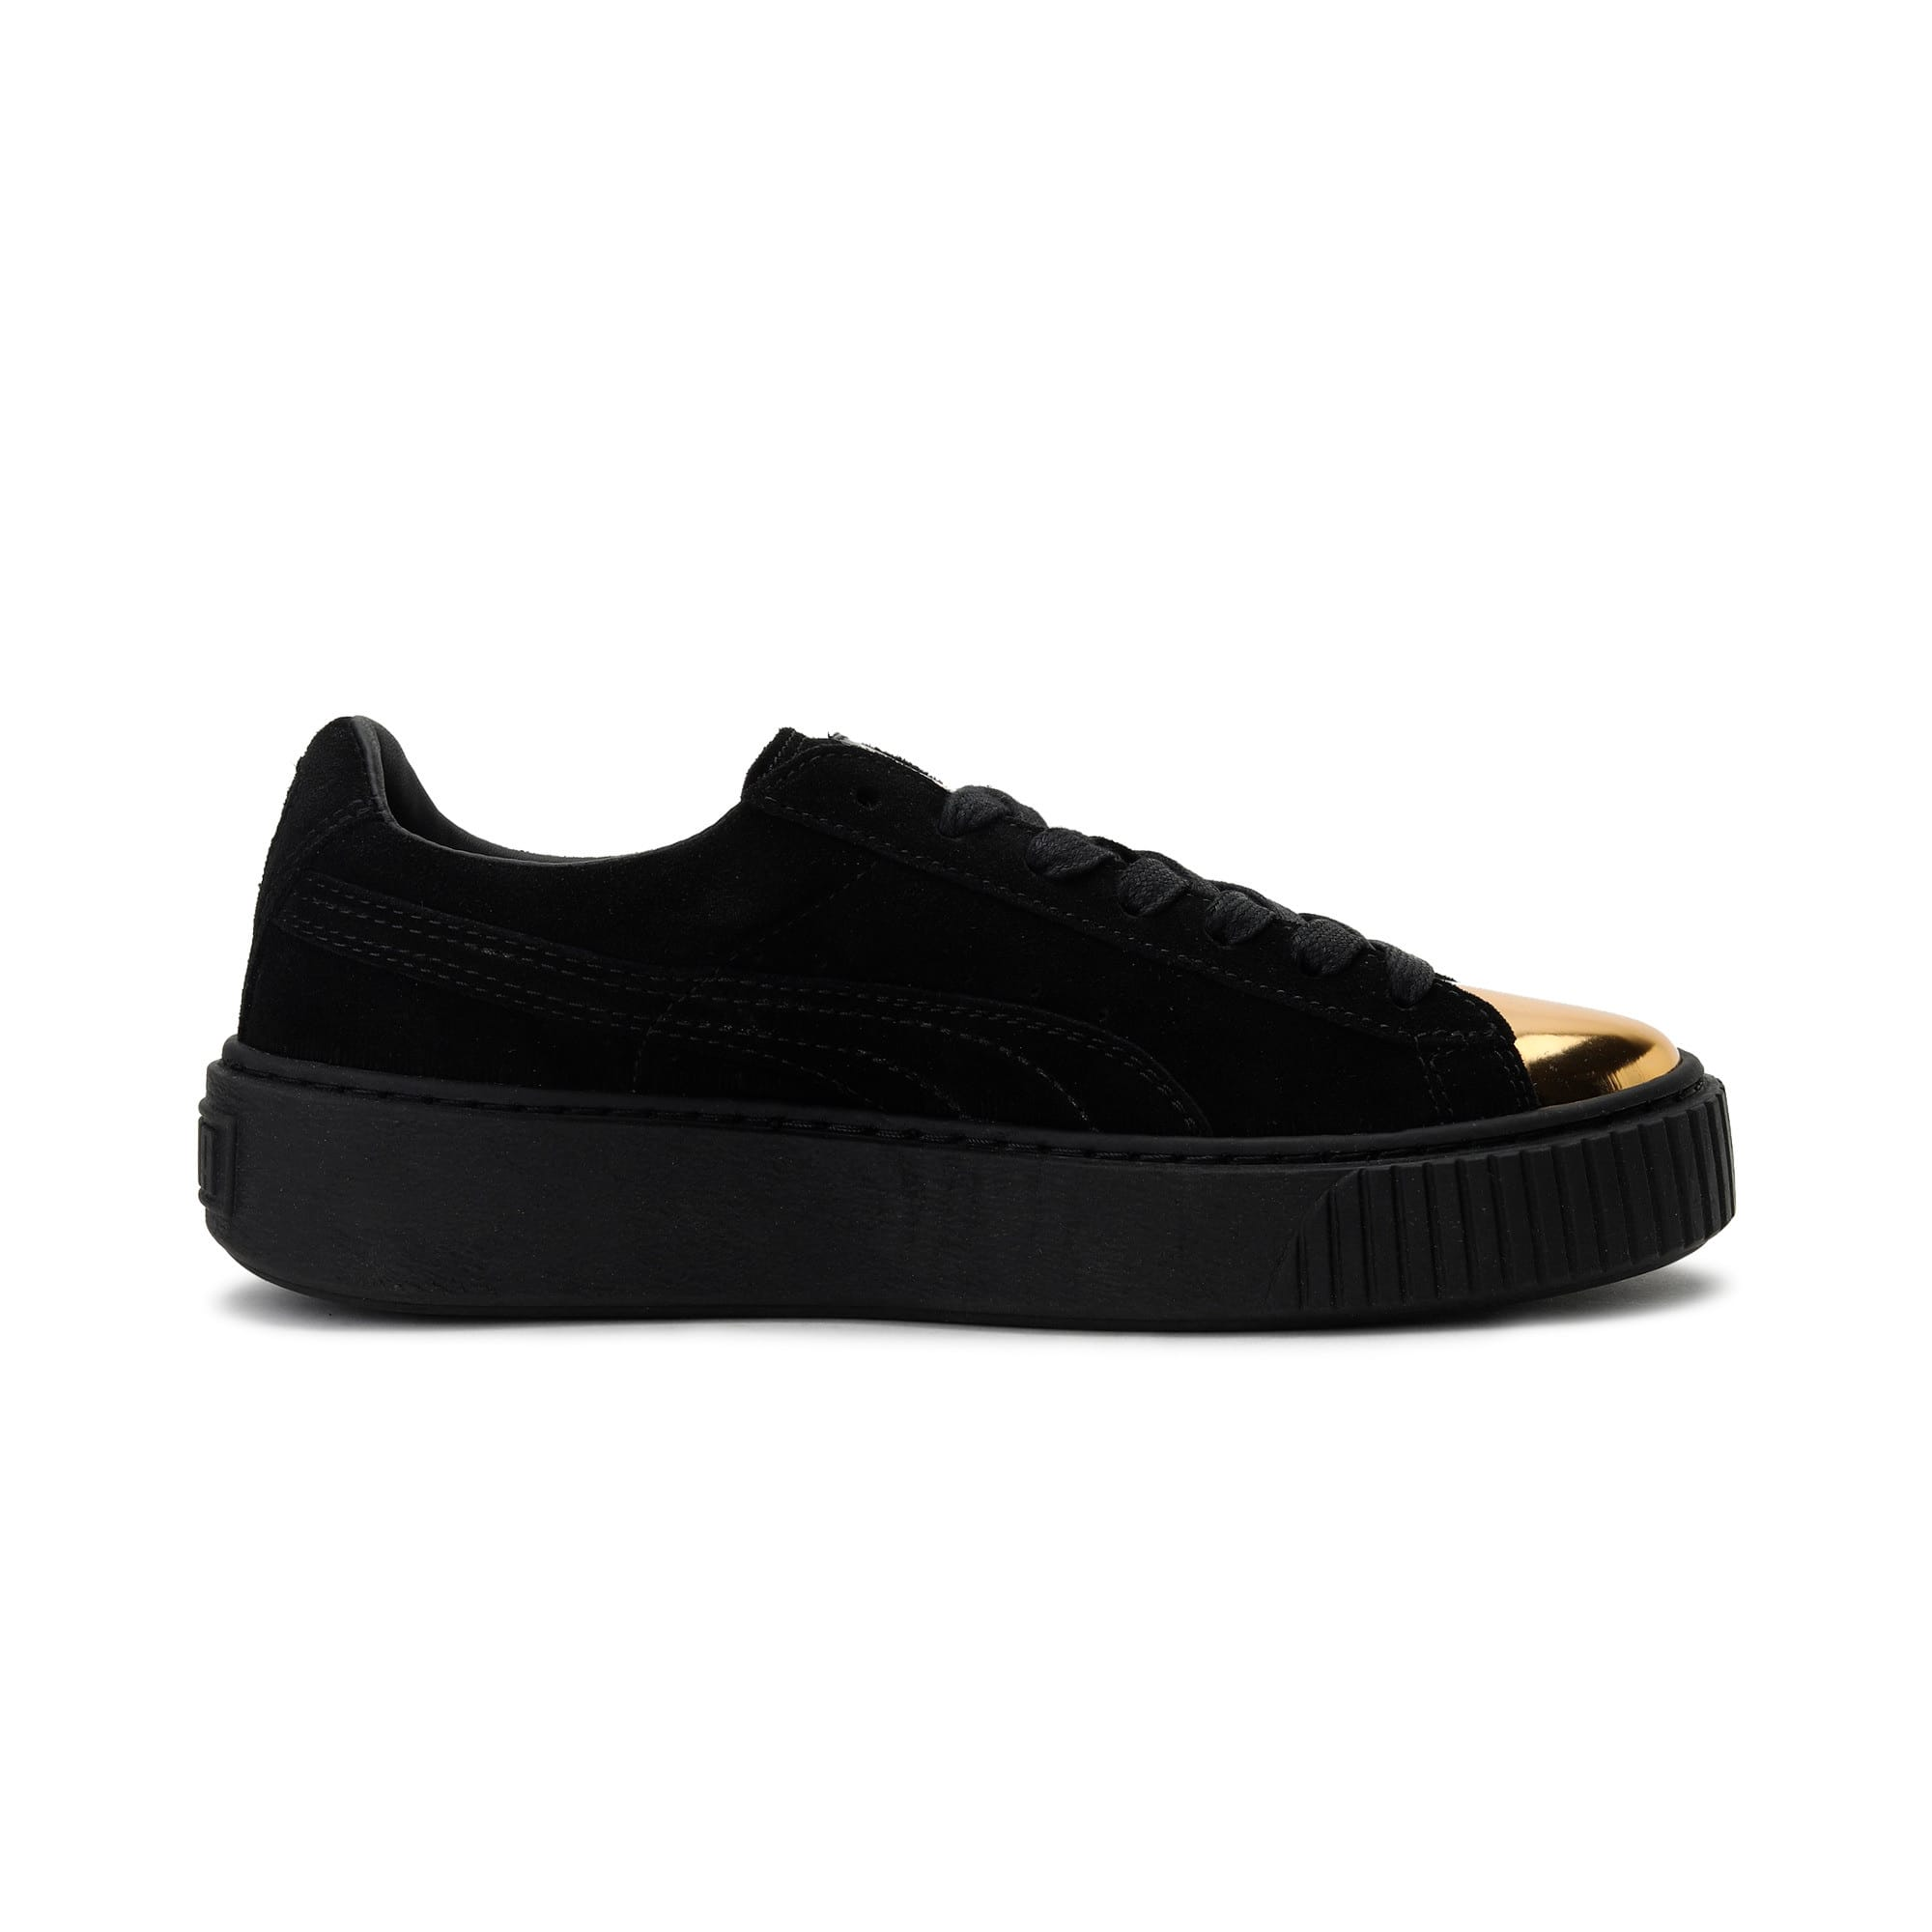 Thumbnail 5 of Suede Platform GOLD Women's Trainers, Gold-Puma Black-Puma Black, medium-IND